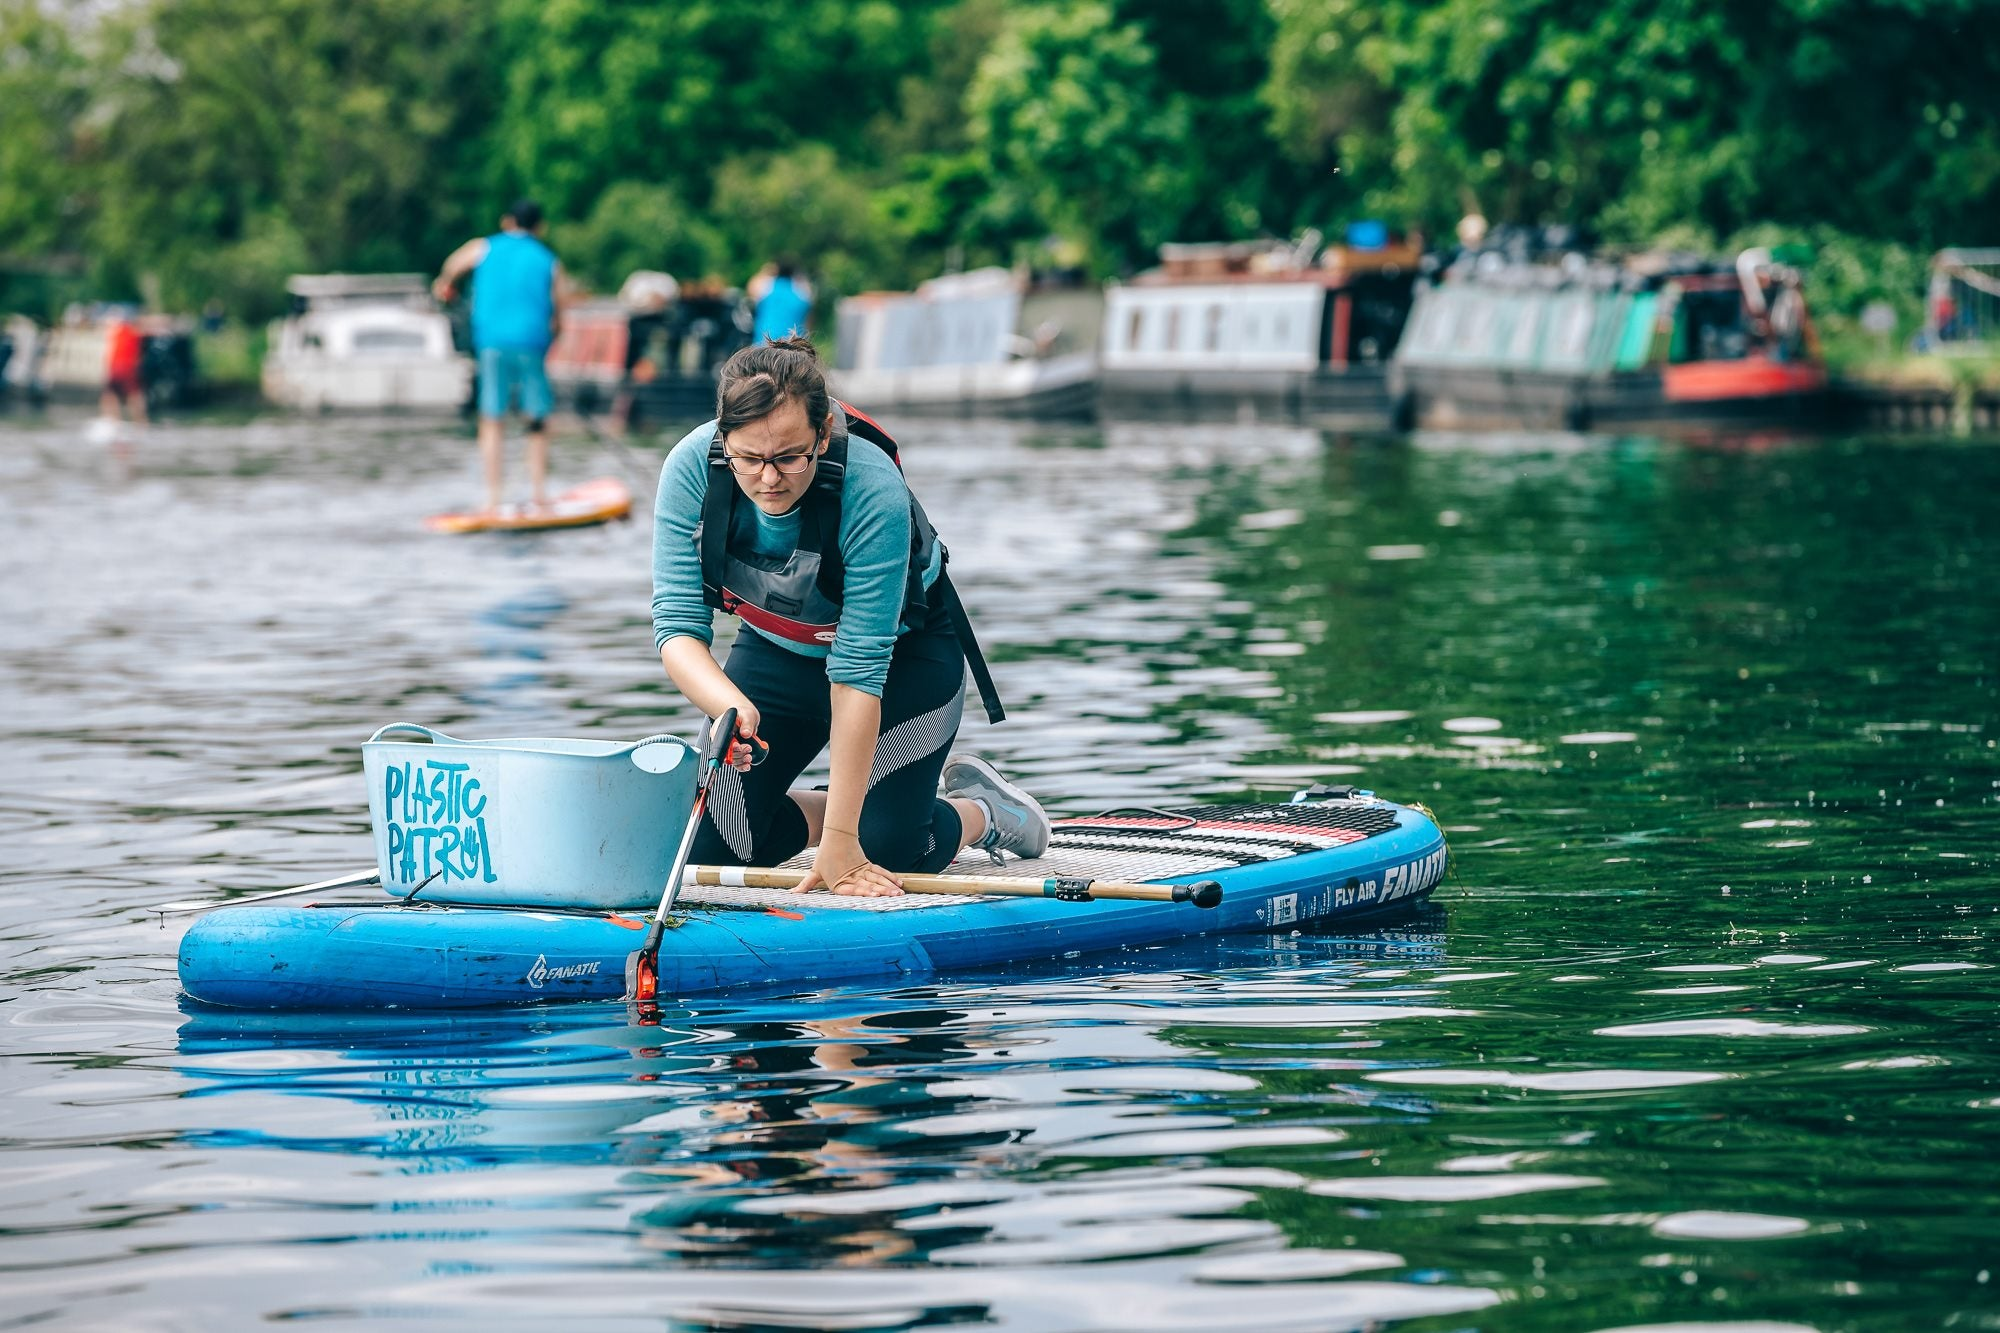 Plastic Patrol at Hackney Festival of Fitness 2019